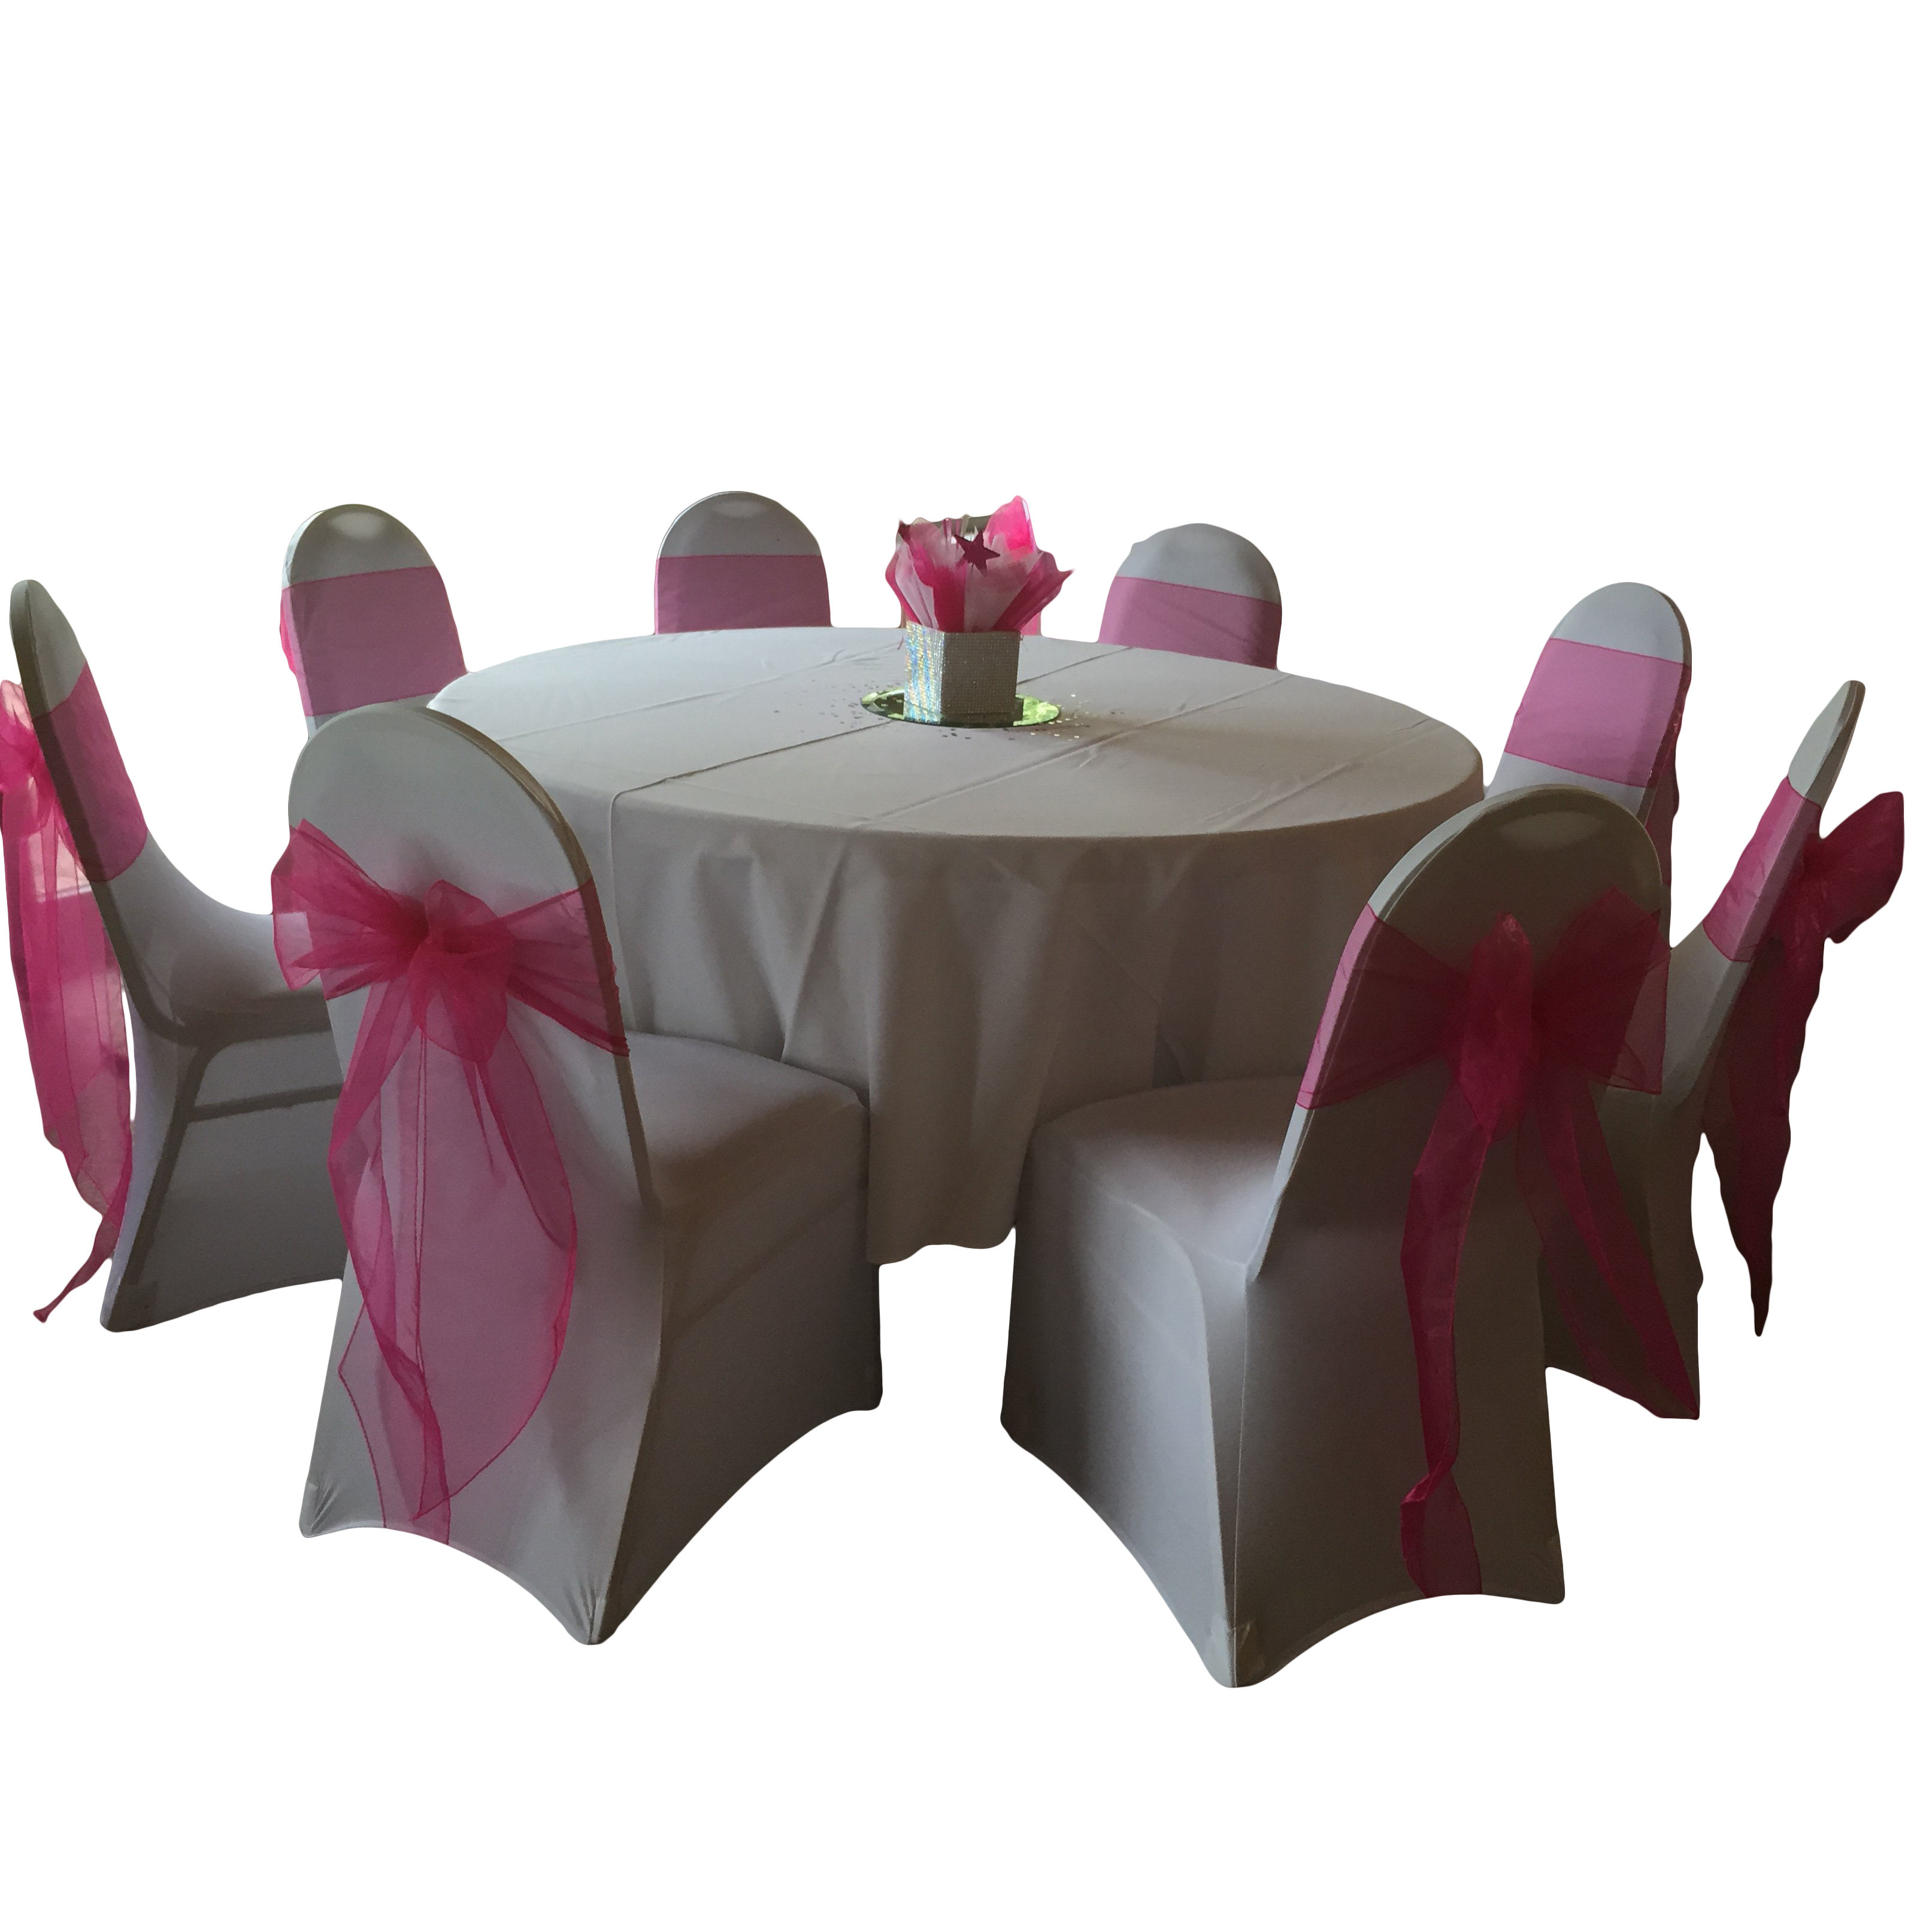 PARTY BANQUET DECOR FUCHSIA PINK WEDDING ORGANZA CHAIR SASHES BOW SASH